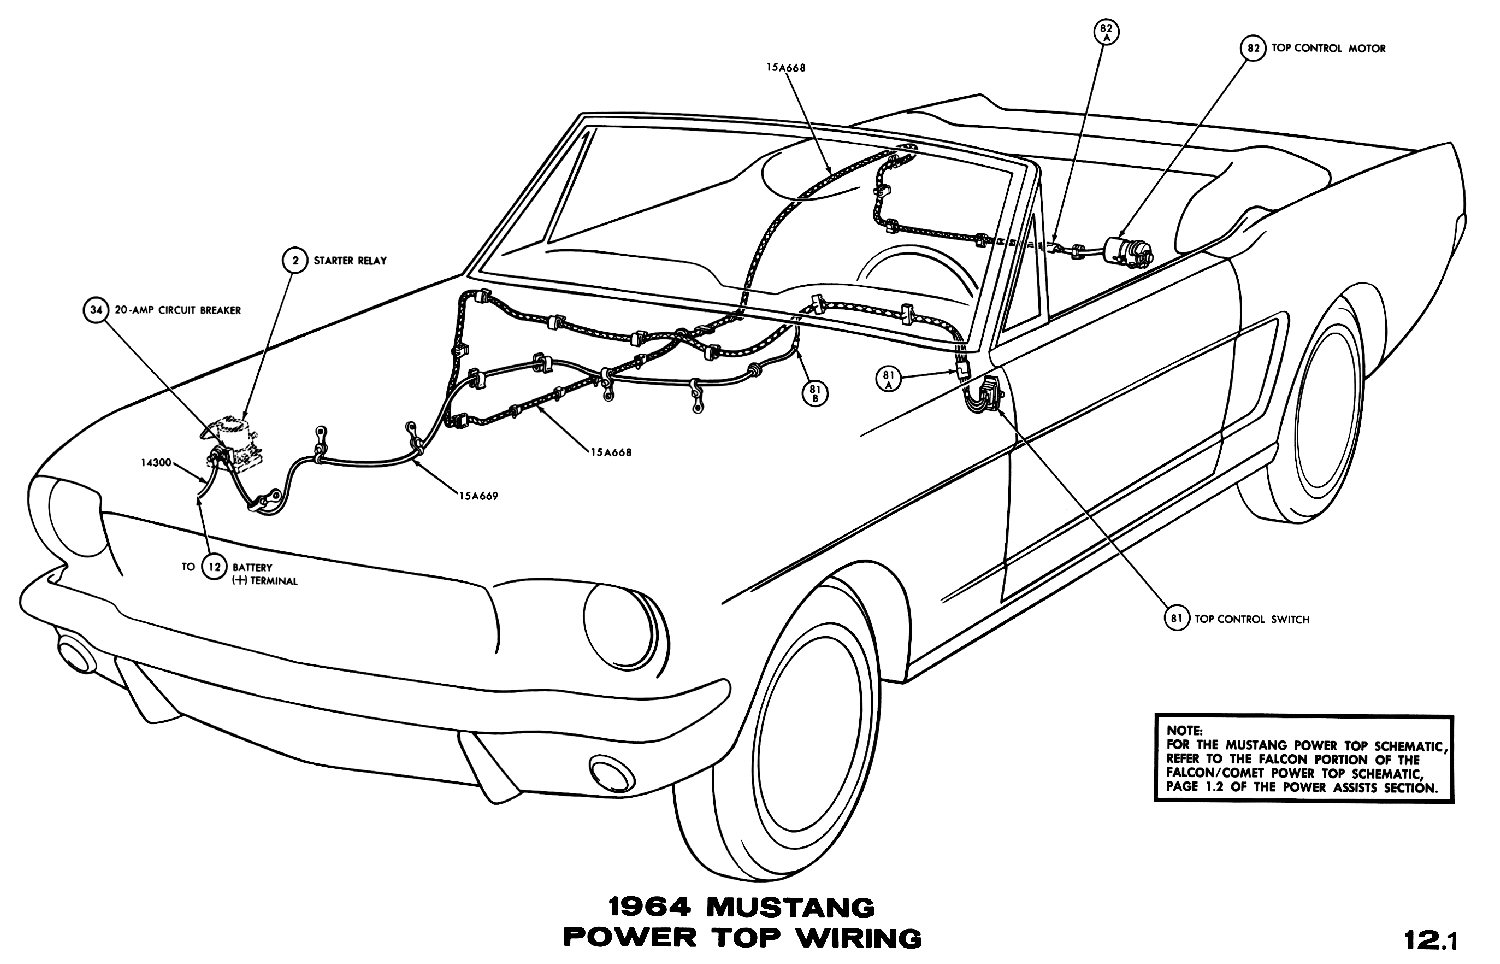 1964 Mustang Wiring Diagrams Average Joe Restoration 1968 Dash Cluster Diagram Power Top Pictorial Or Schematic